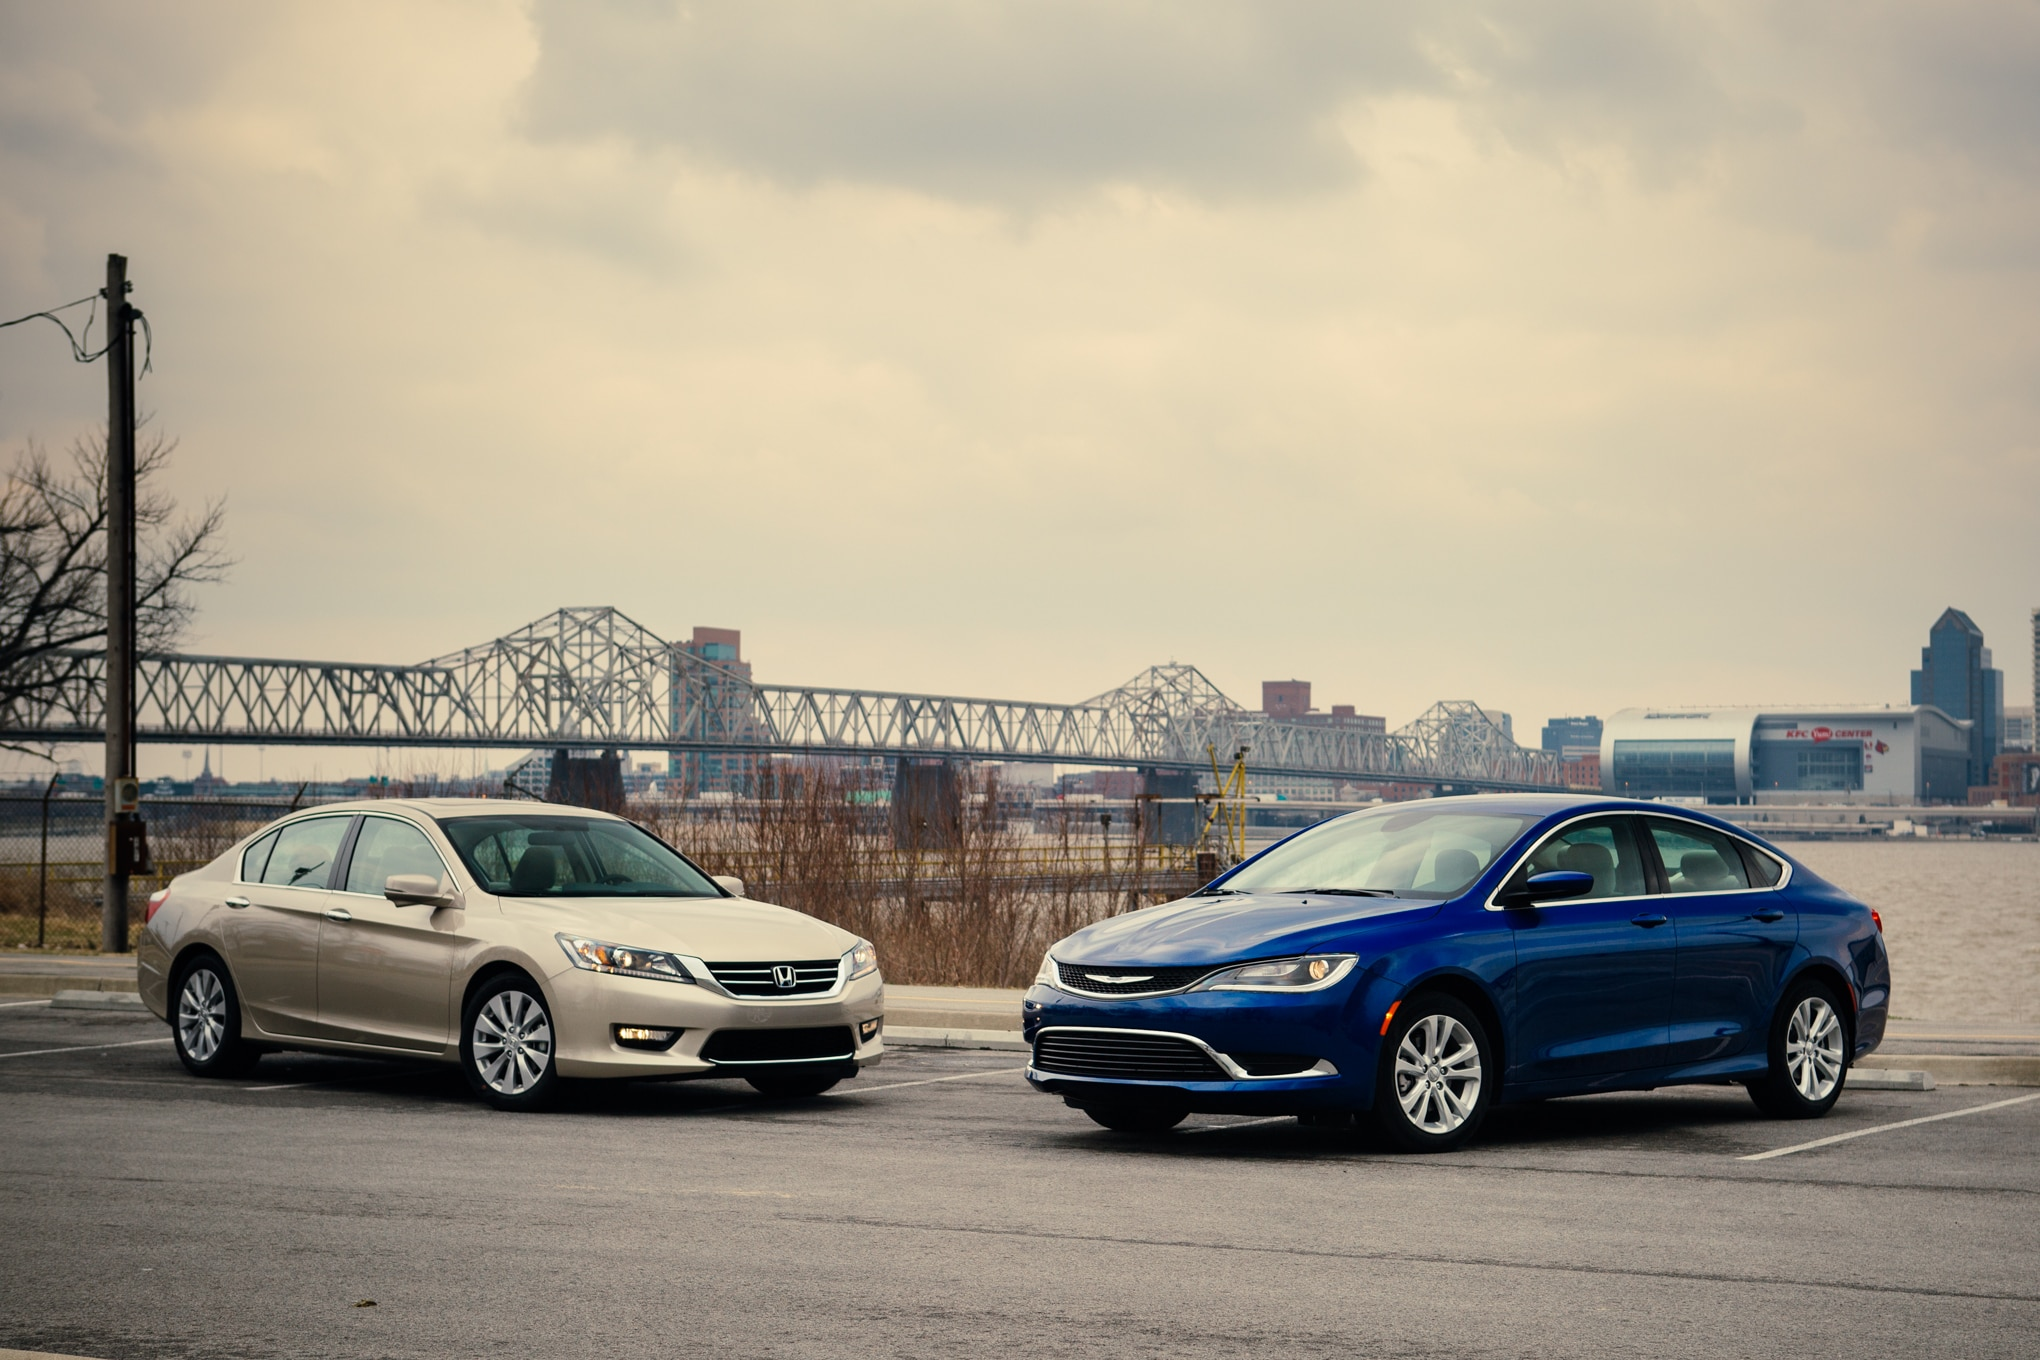 2015 Chrysler 200 Limited Vs 2014 Honda Accord EX Front Three Quarter